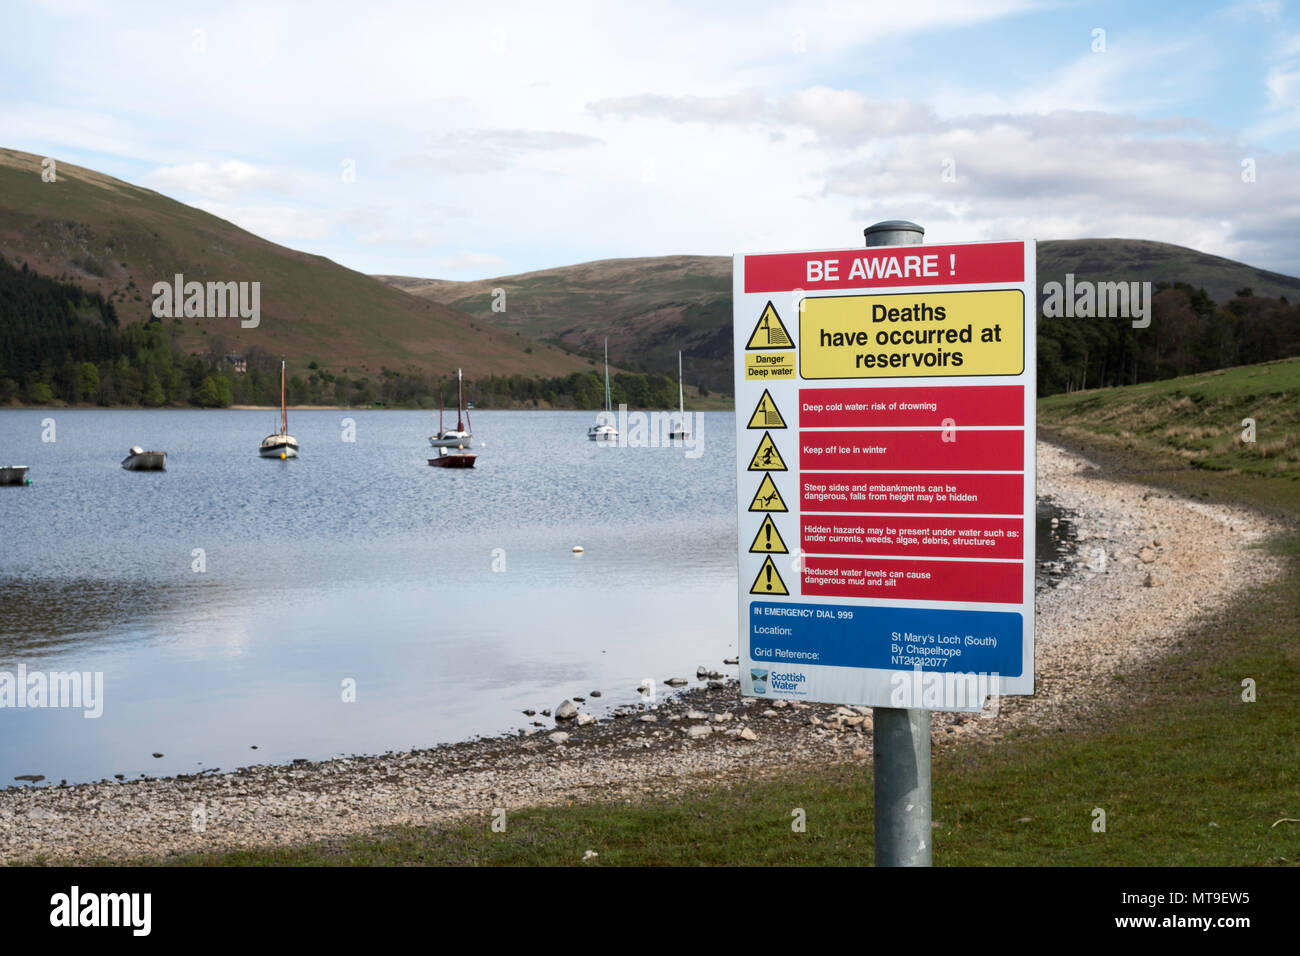 a-scottish-water-safety-warning-notice-a